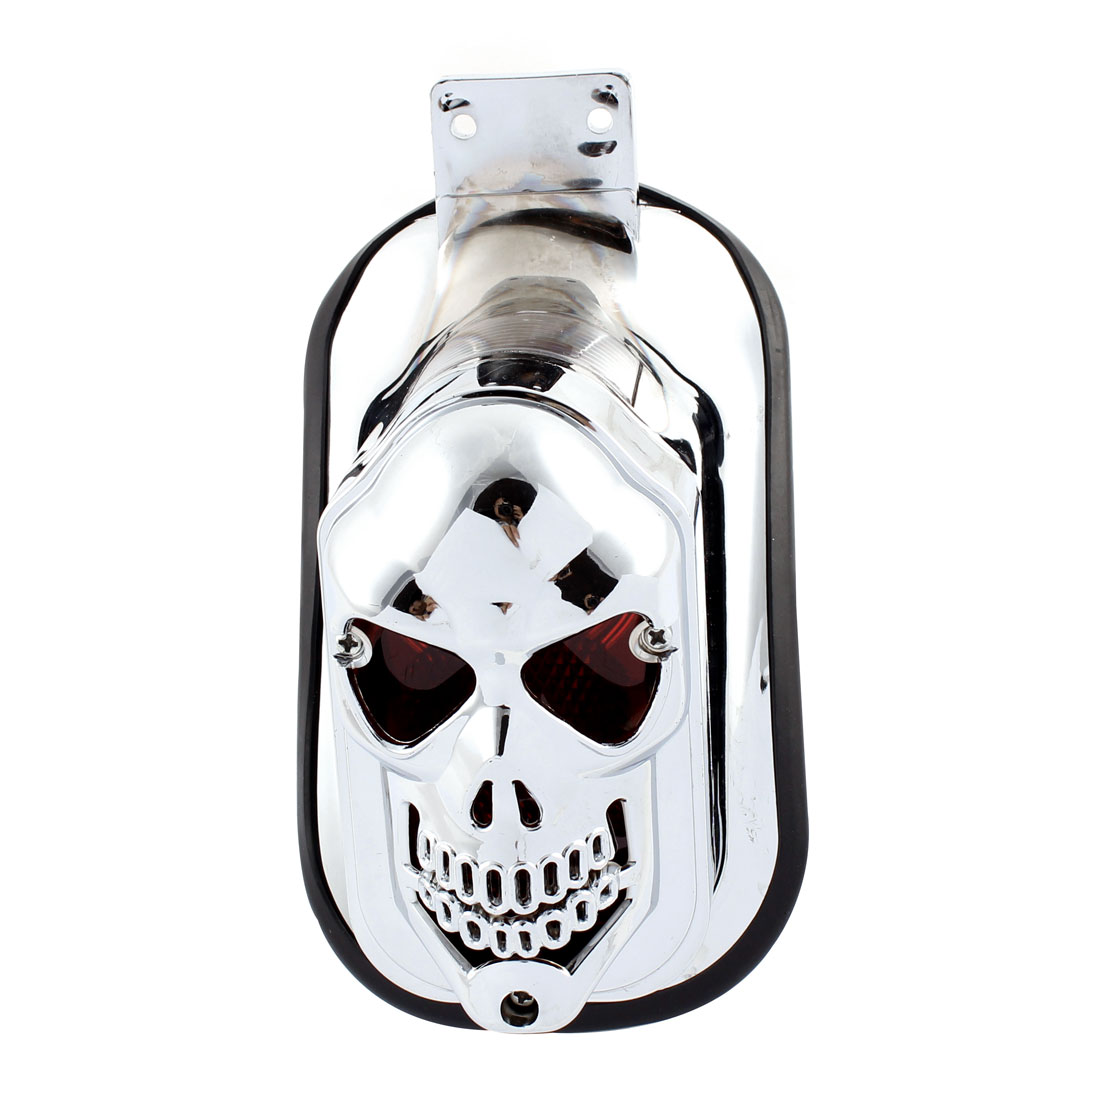 Motorcycle Yellow LED Lamp Silver Tone Skull Head Design Plastic Shell Rear Turn Tail Light DC 12V